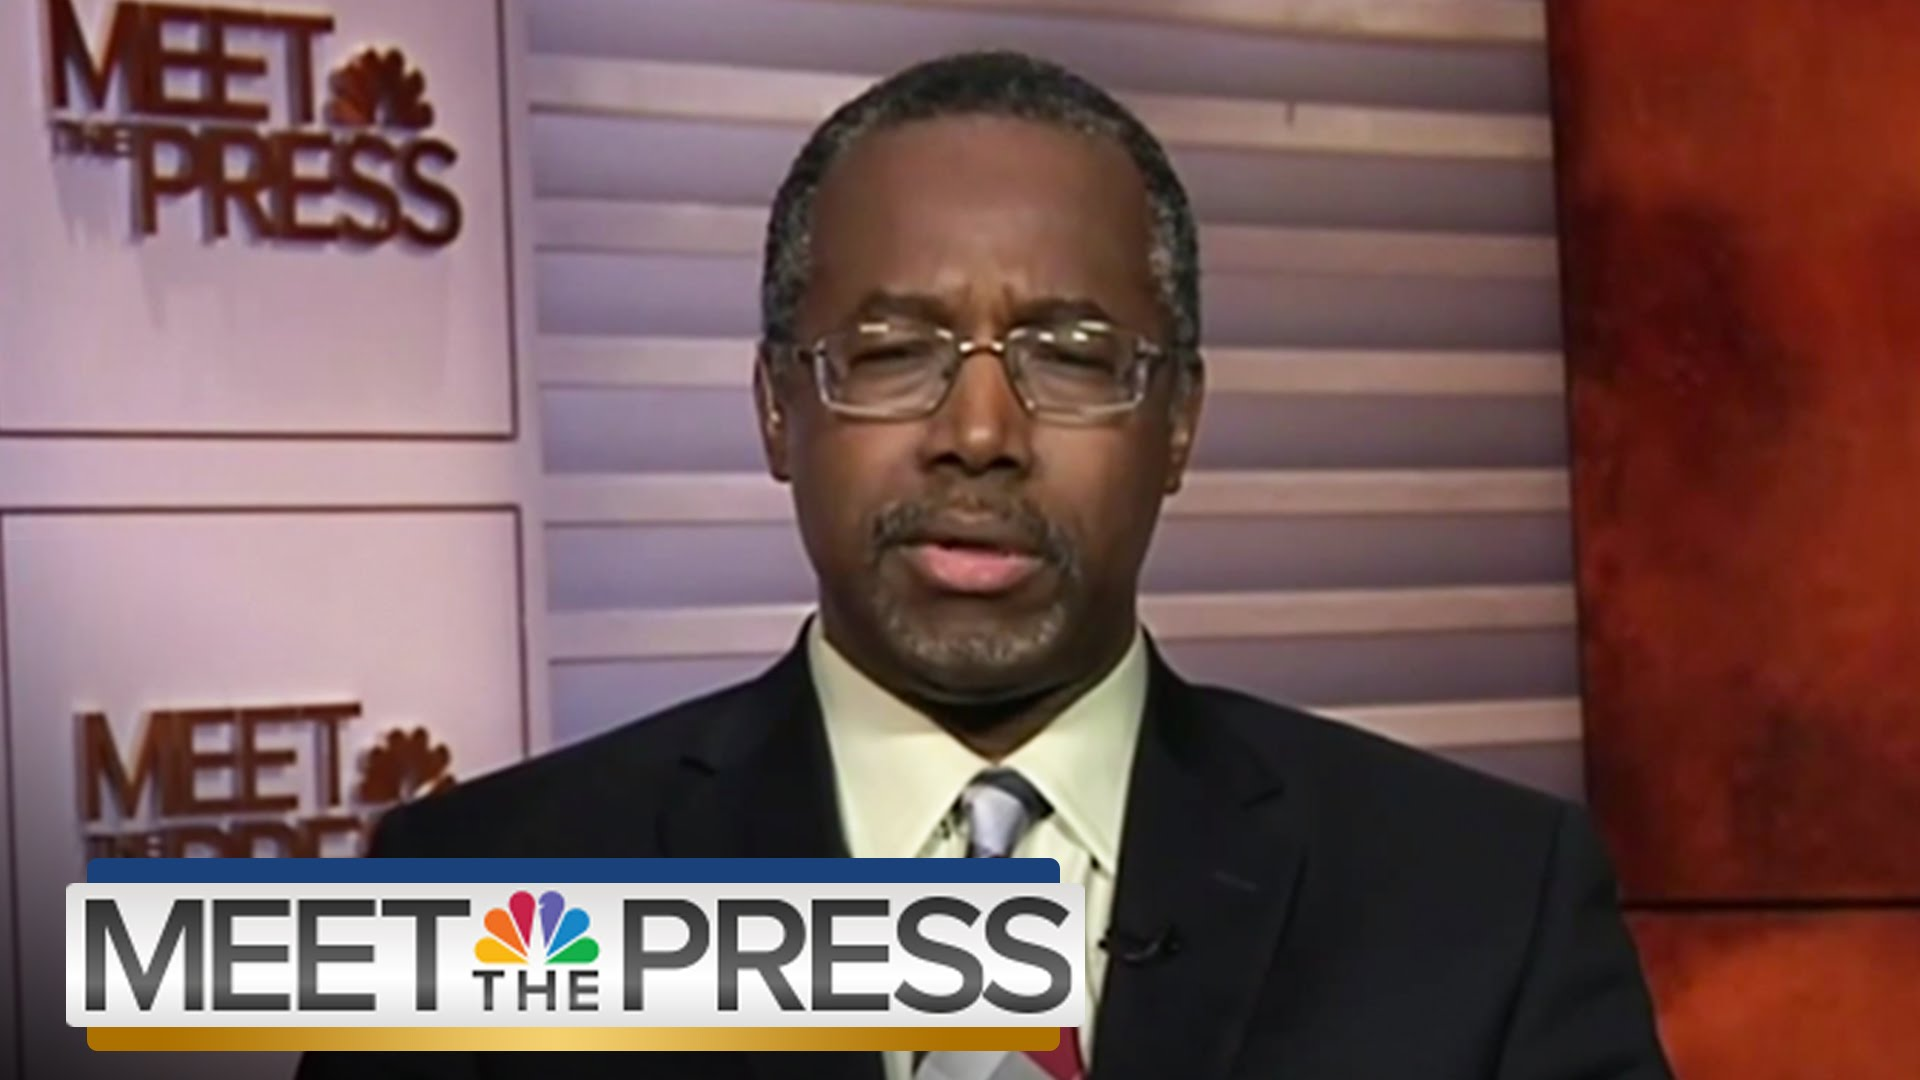 Republican presidential candidate Dr. Ben Carson on NBC's Meet The Press. Photograph: NBC News